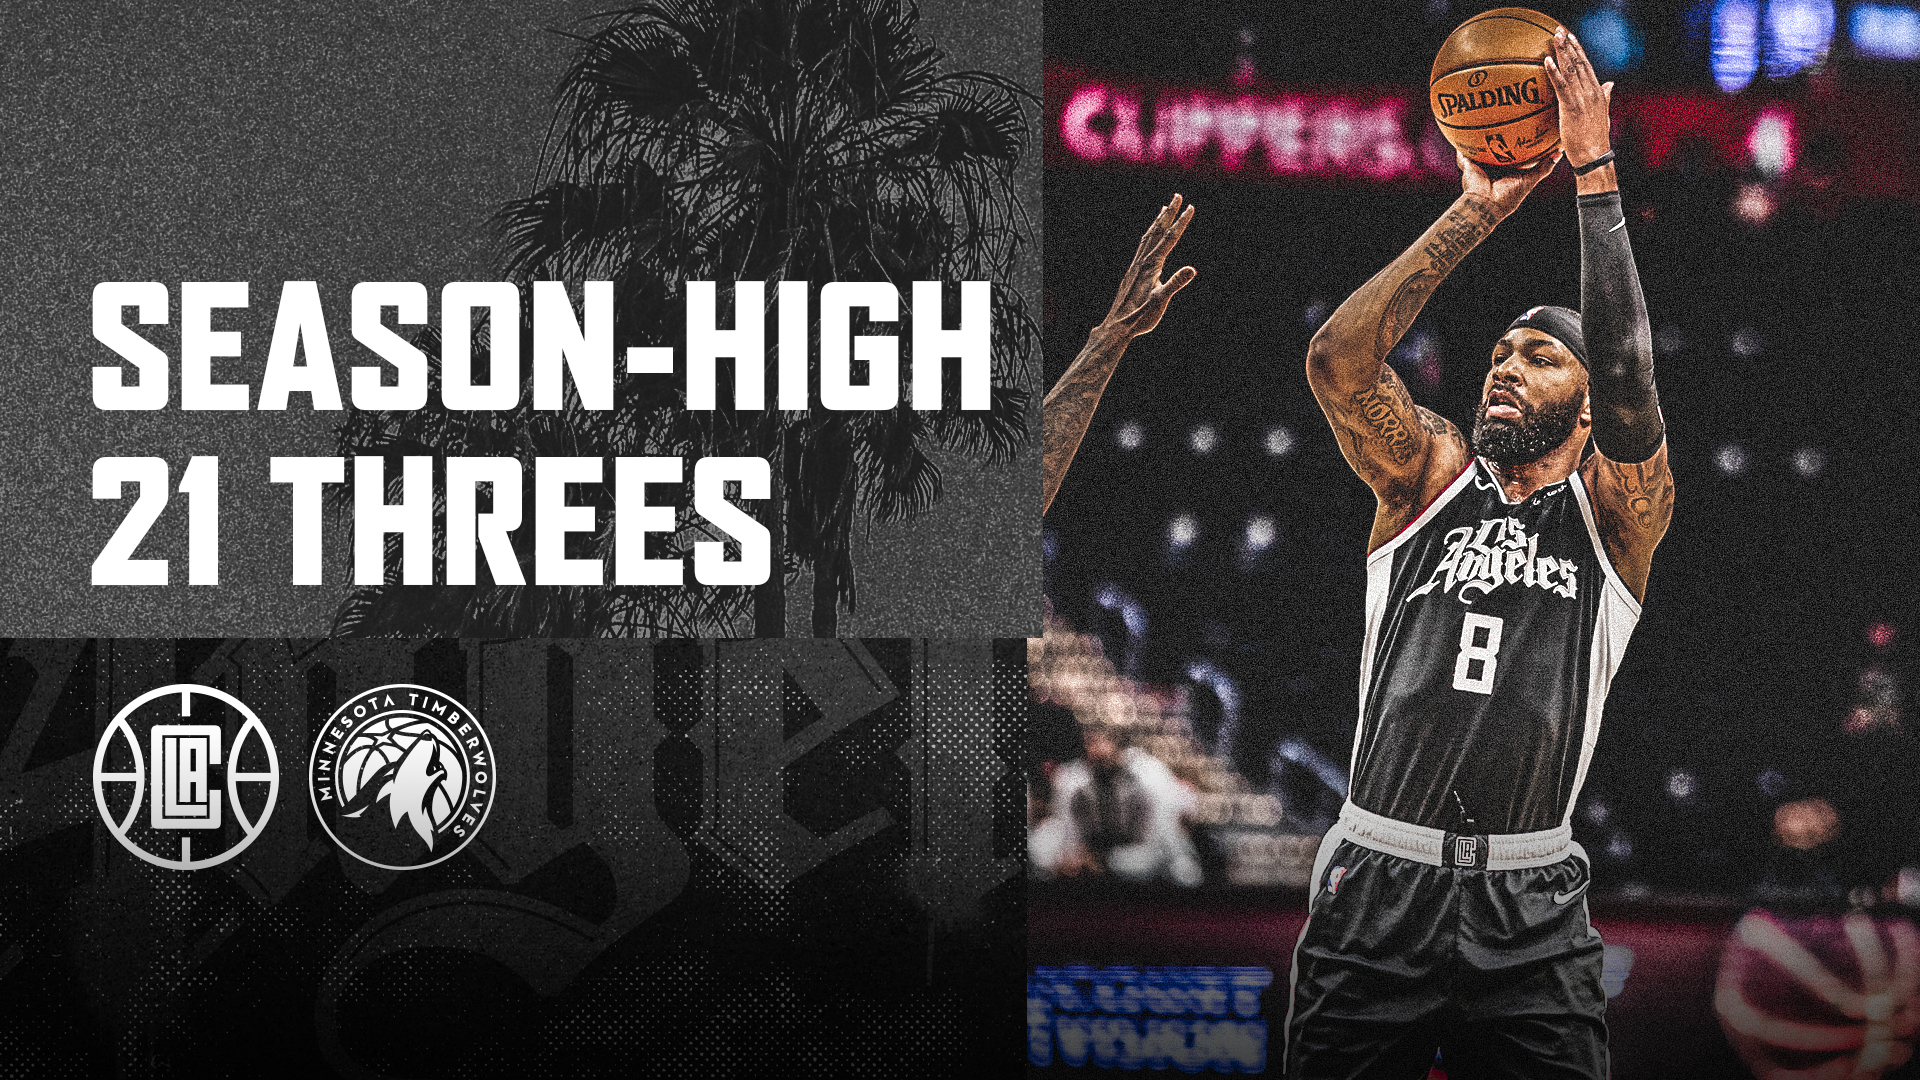 Clippers Hit Season-High 21 Threes vs Timberwolves | (4.18.21)